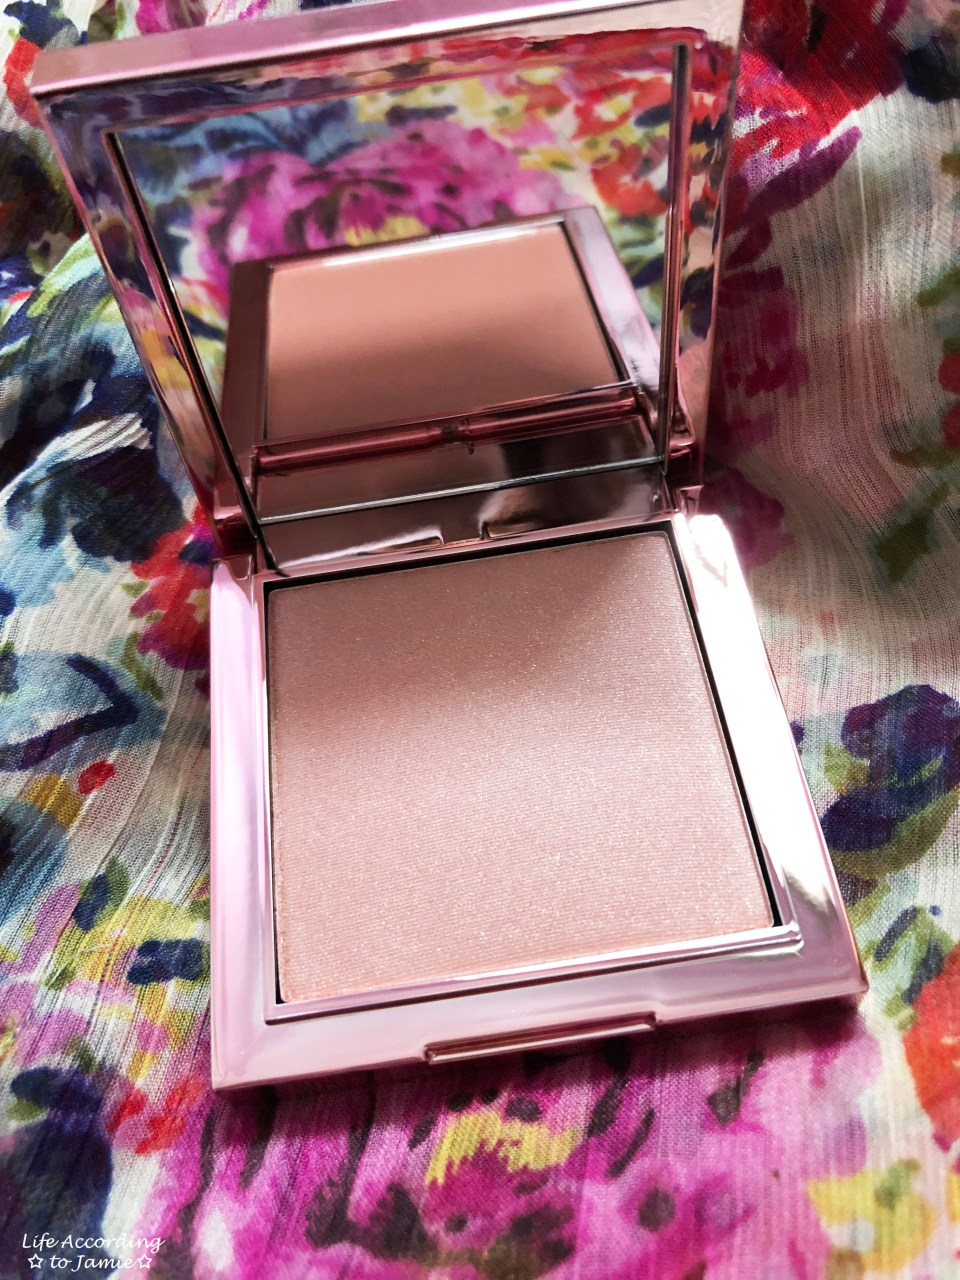 Christie Brinkley - Authentic Beauty Blush